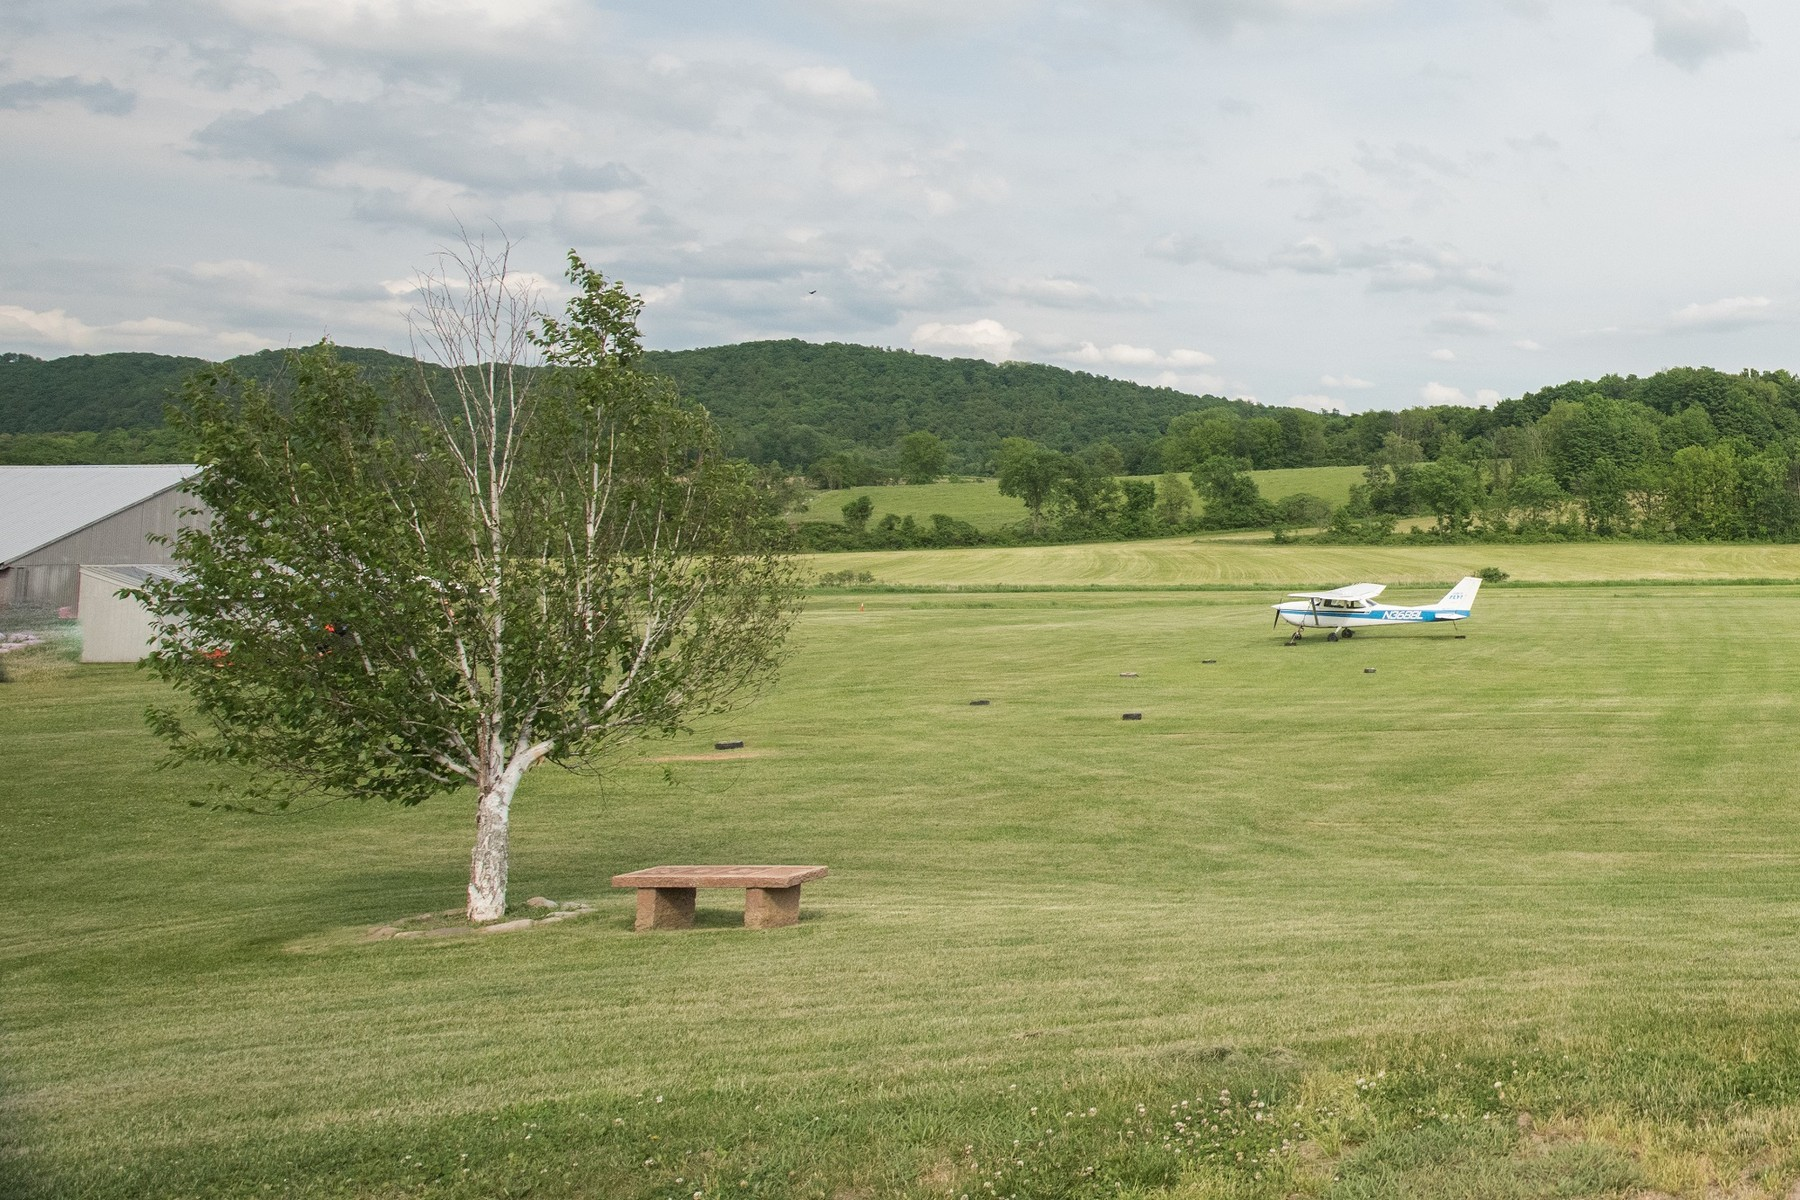 Additional photo for property listing at Argyle Airport 5292  State Route 40 Argyle, New York 12809 United States